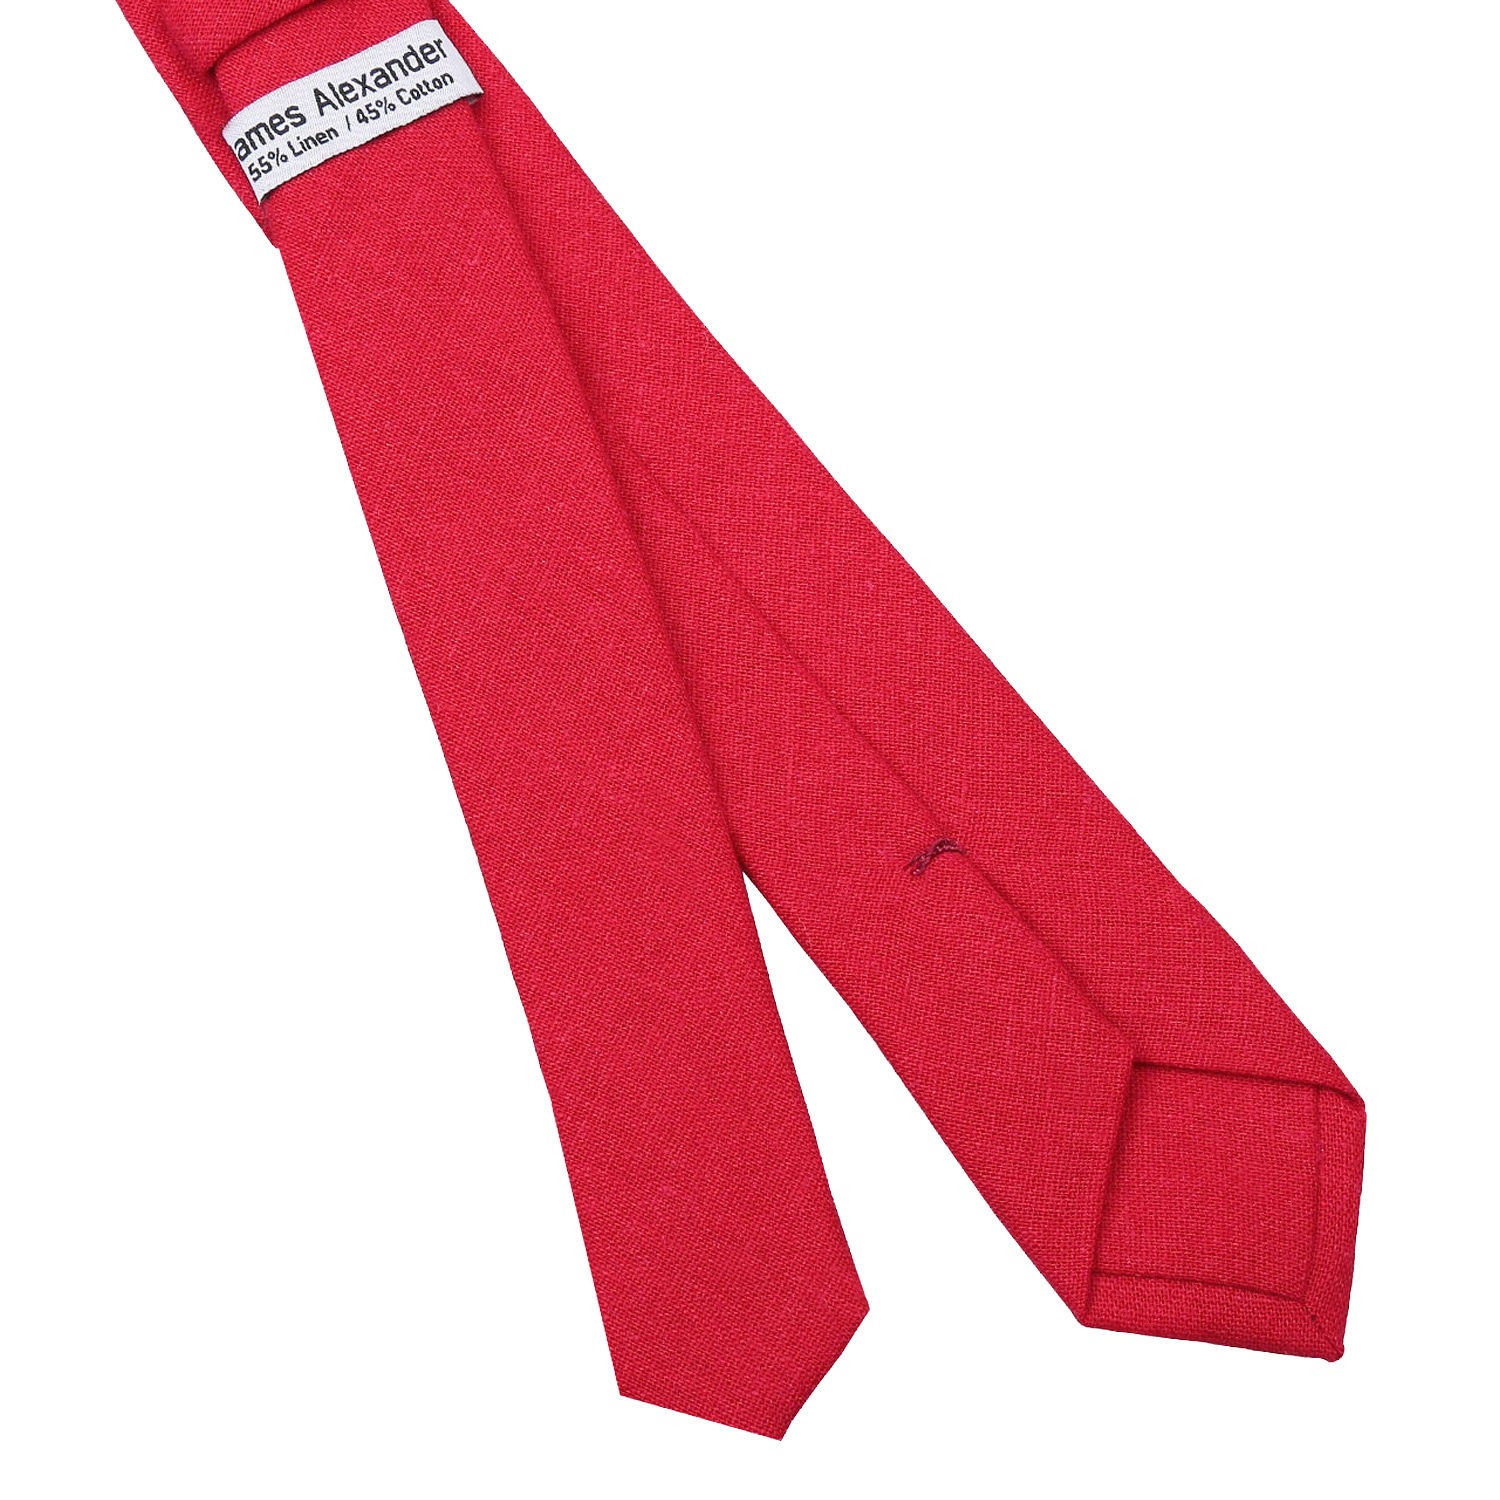 d57fa42211cd Red Hopsack Linen Skinny Tie - James Alexander